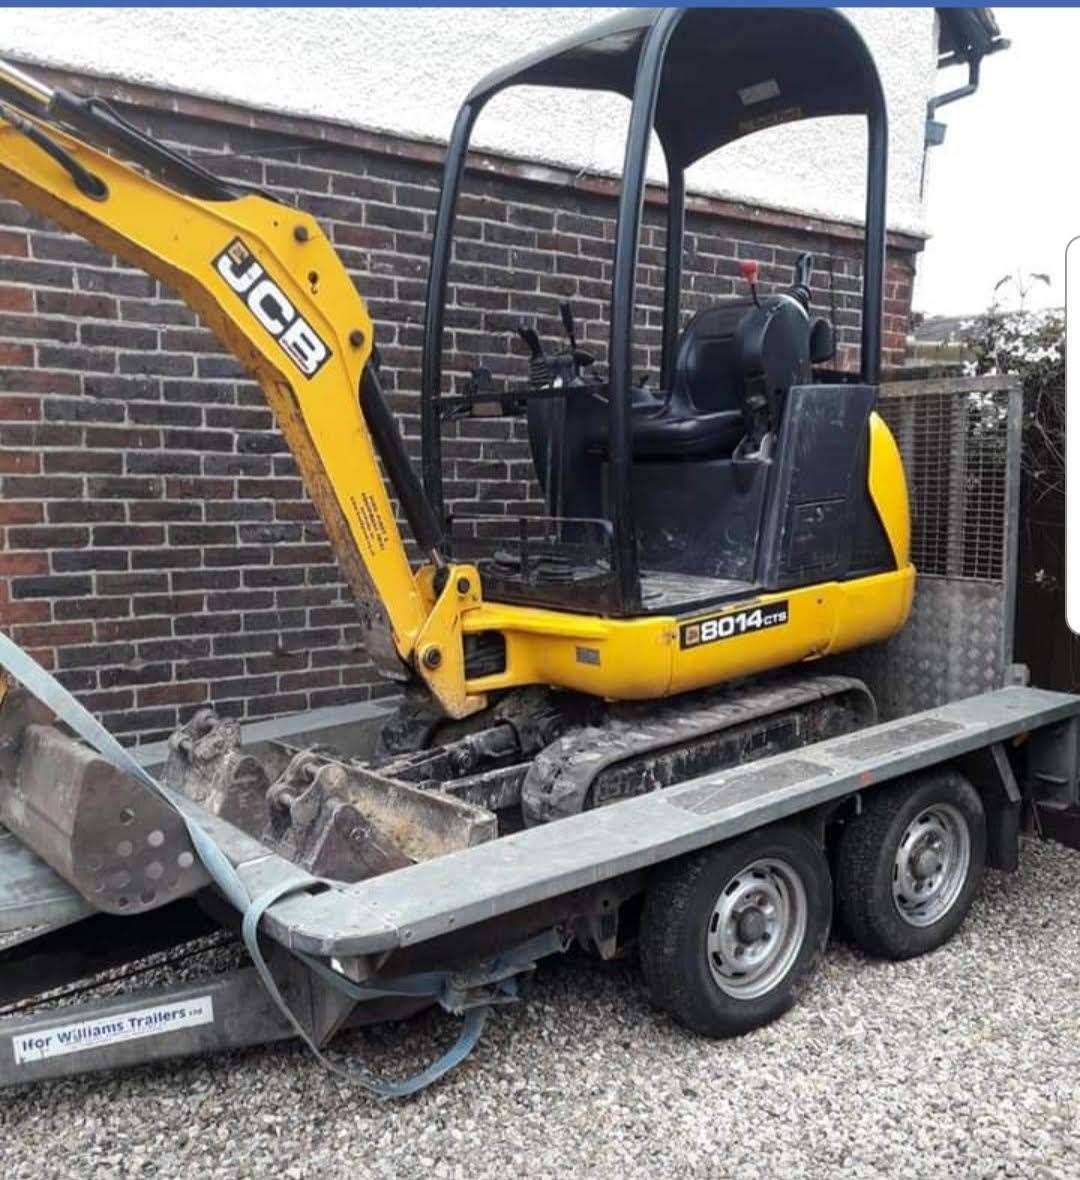 Nathan Woods JCB was stolen from his drive last week